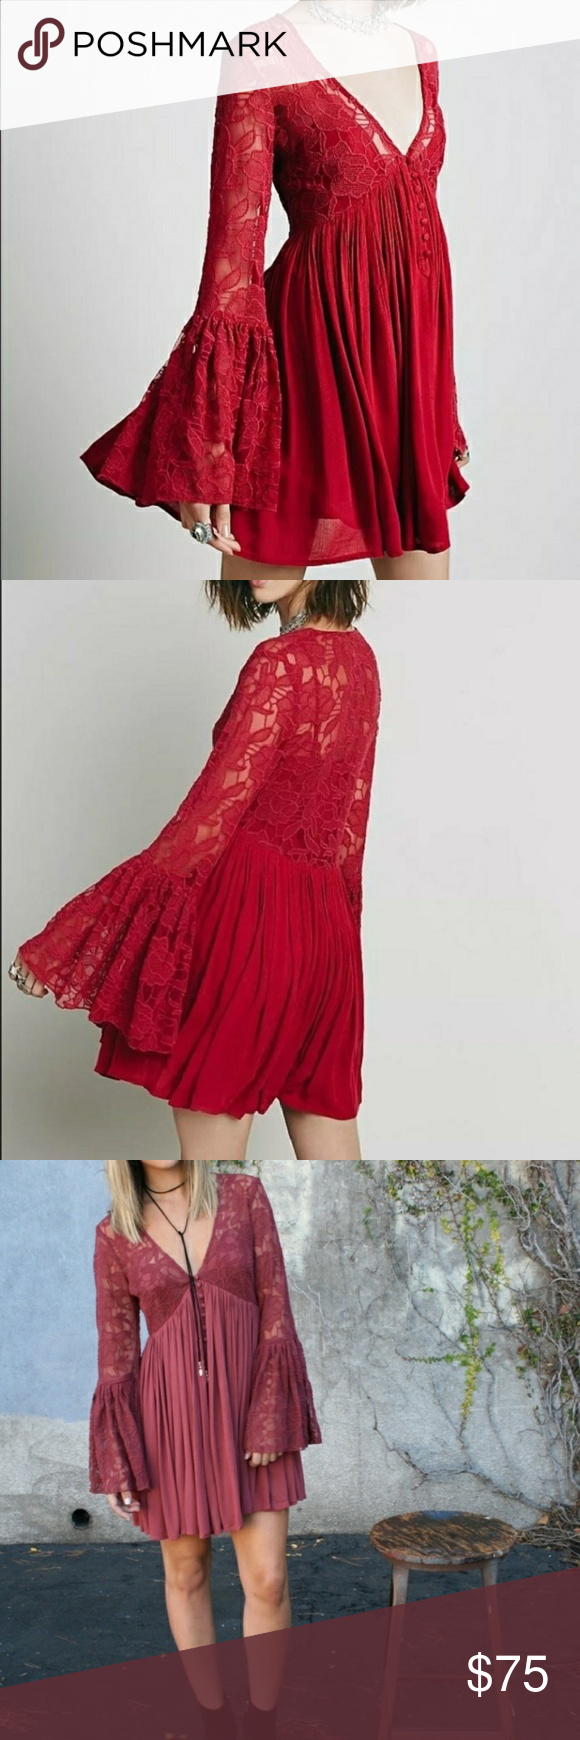 83941642803 Free People With Love From India Lace Dress Beautiful dark pink red sheer lace  dress with long bell sleeves. Button front. Detachable slip inside. Size XS.